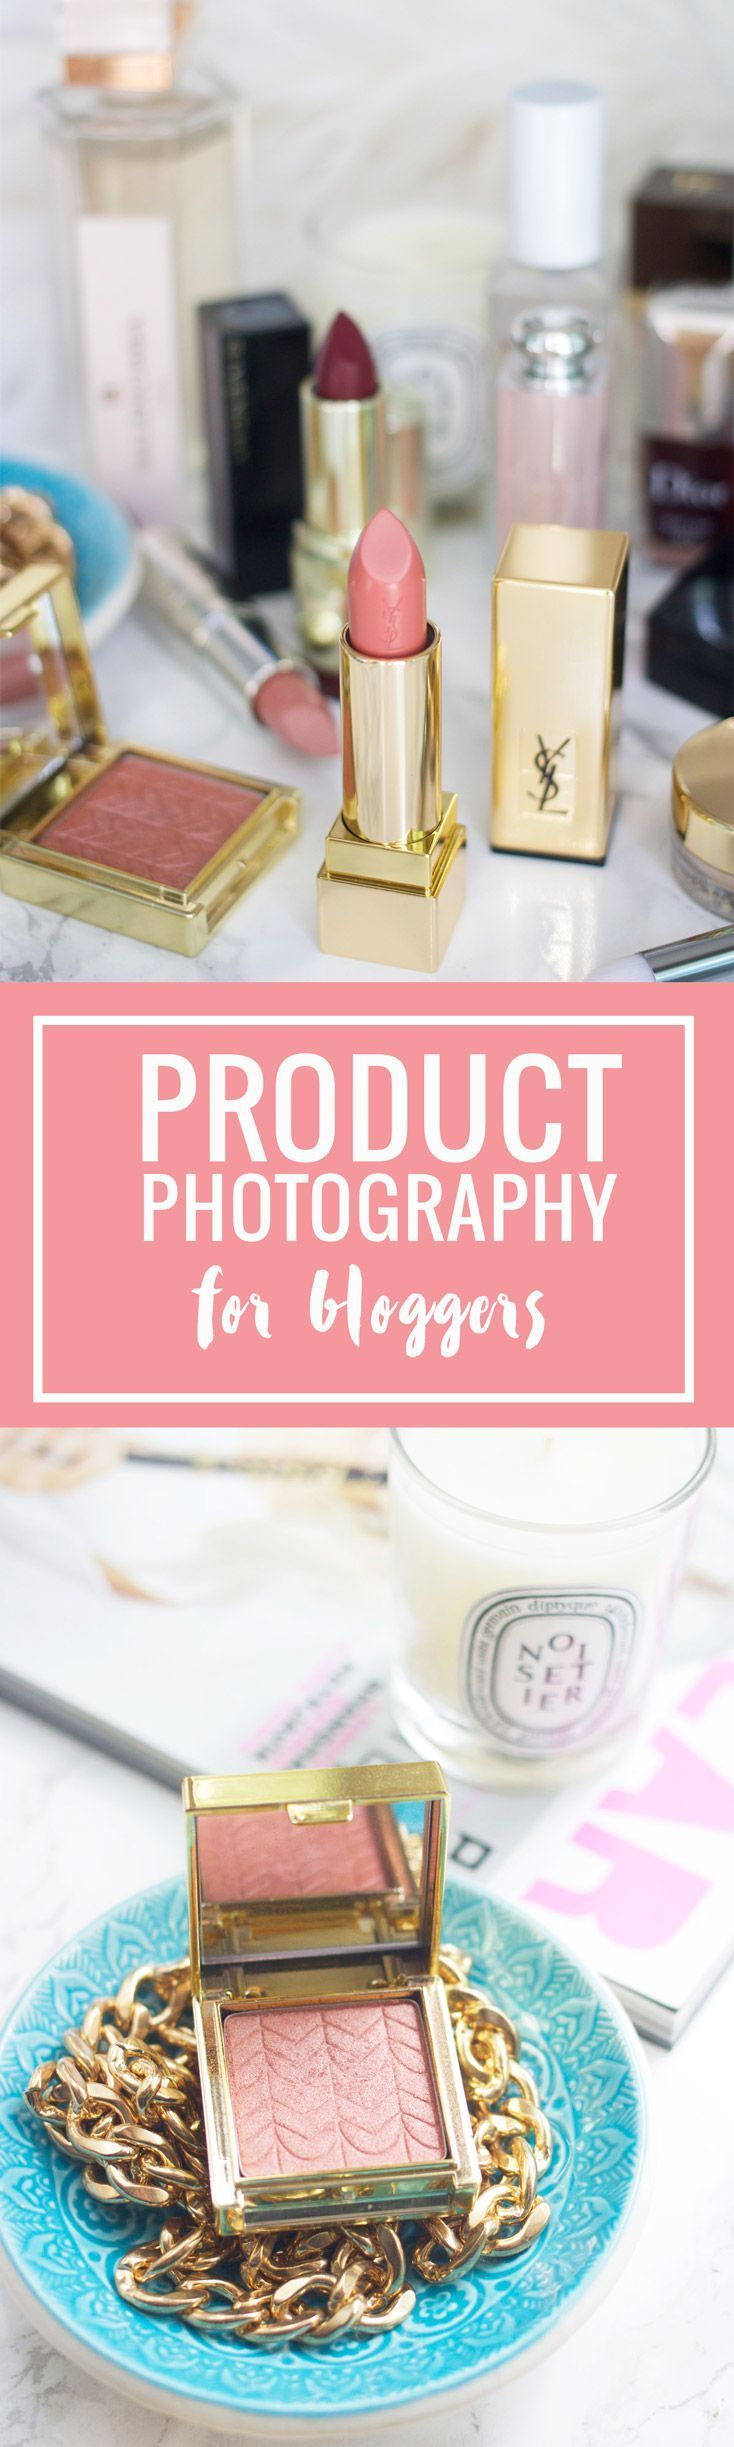 Product photography tips for bloggers | How to take great product photos for your blog